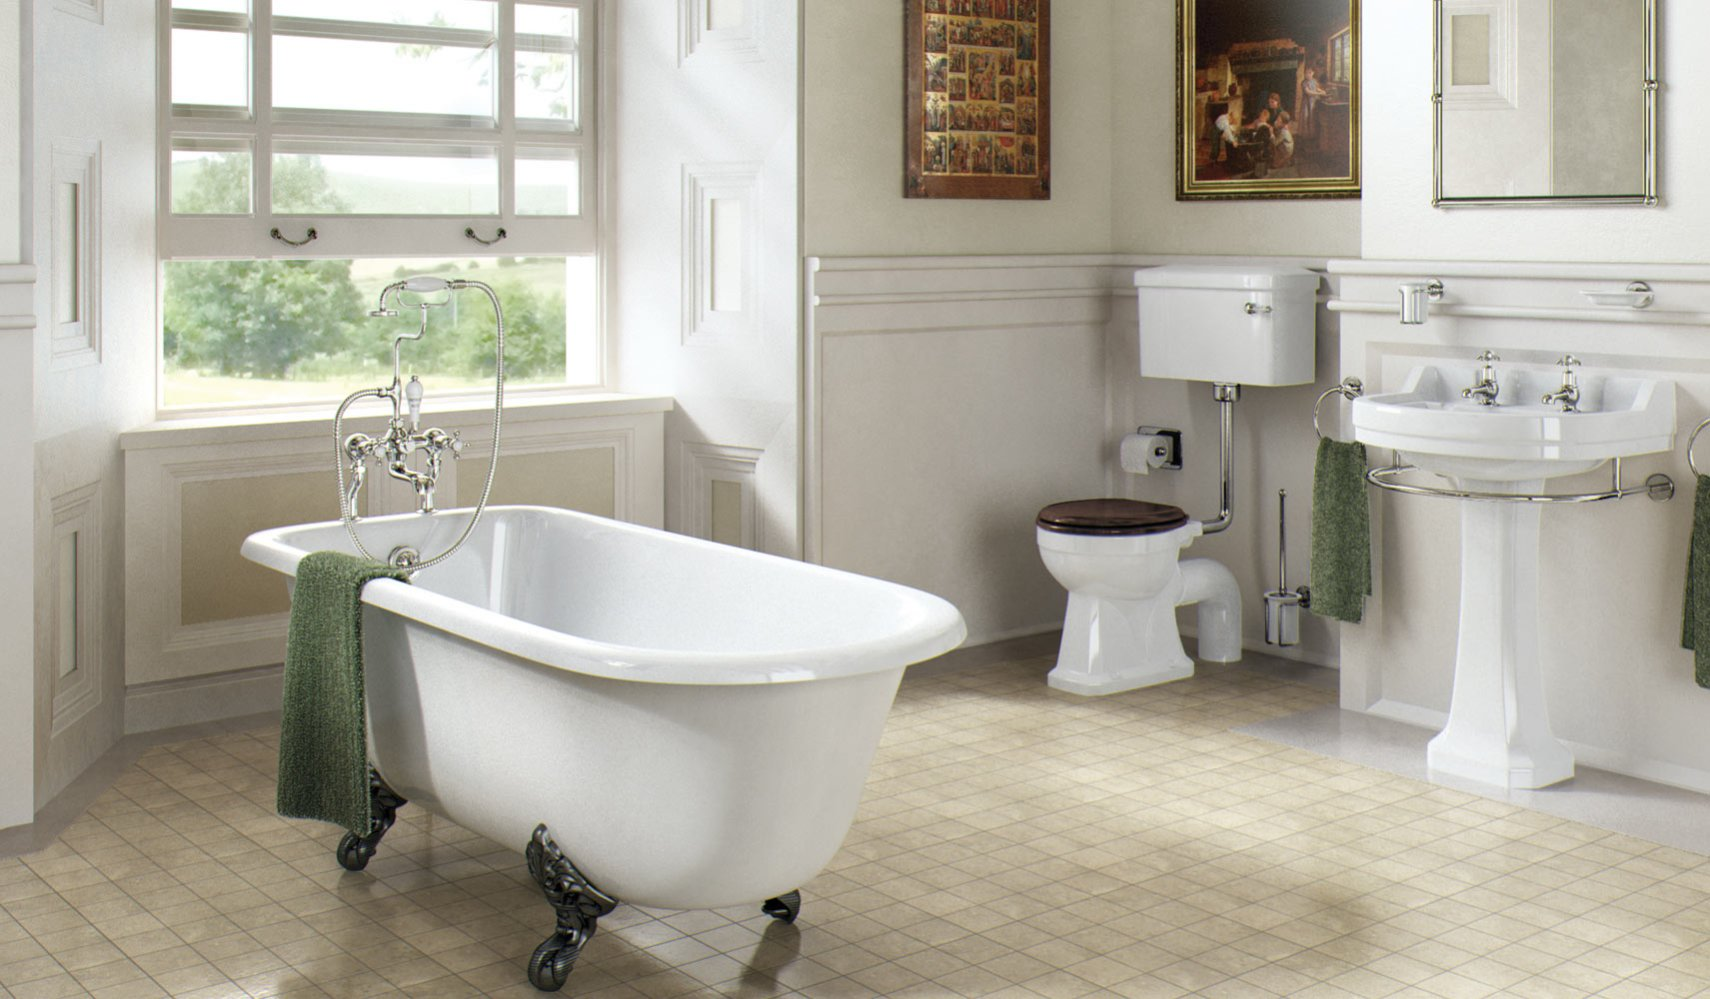 25 marvelous traditional bathroom designs for your inspiration for New bathtub designs